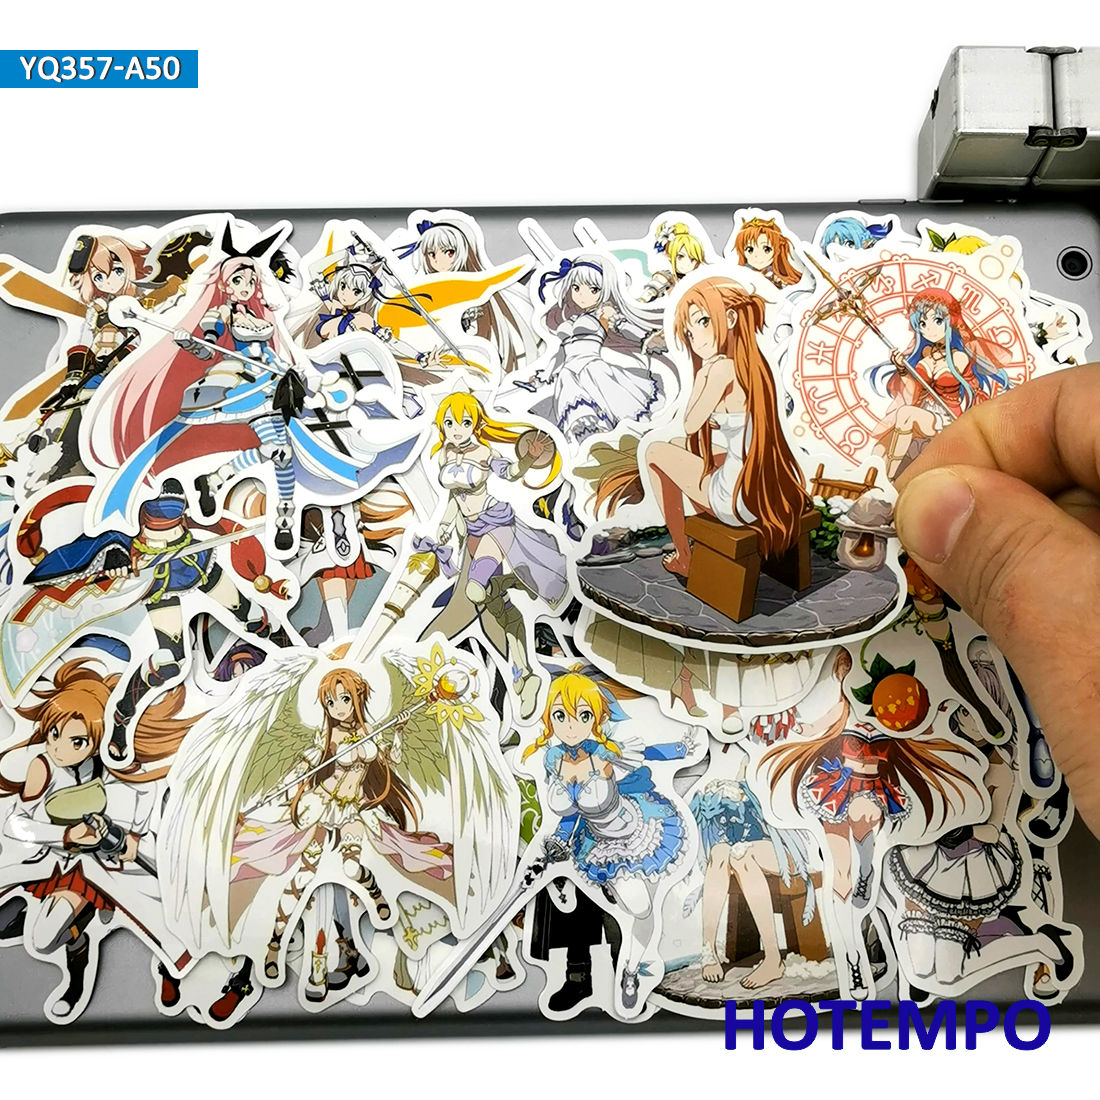 50pcs Sword Art Online SAO Anime Games Style Stickers Toys For Kids Mobile Phone Laptop Luggage Case Skateboard Cartoon Stickers